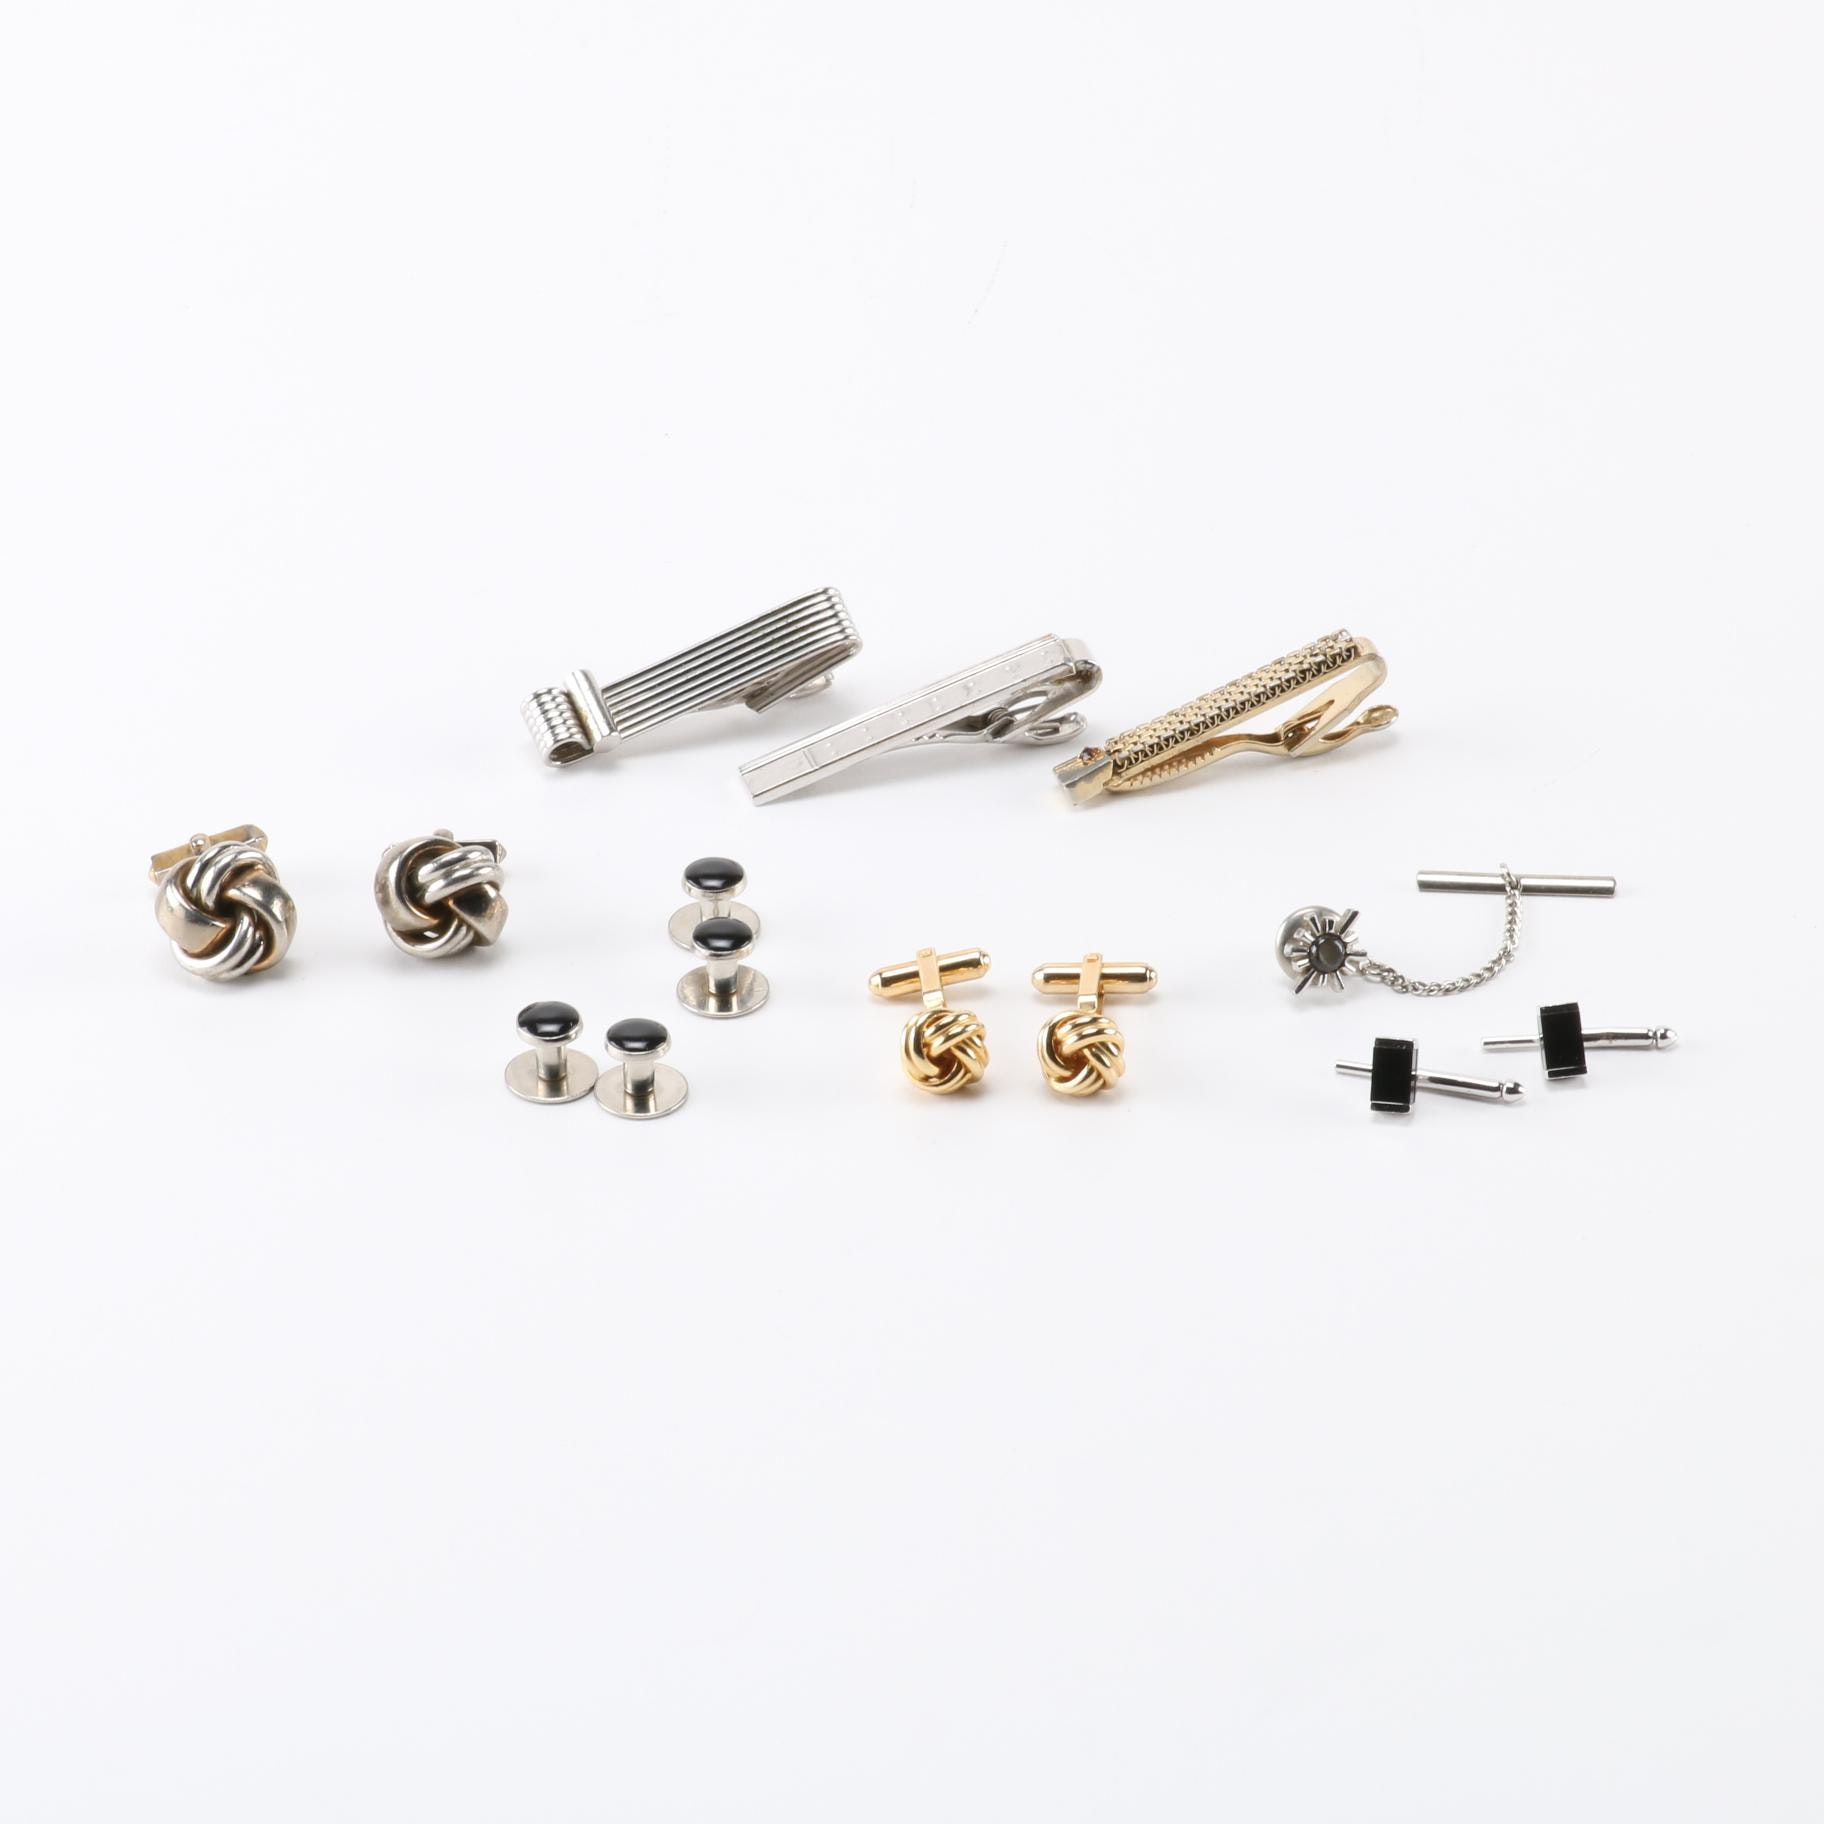 Cufflinks, Tie Clips, and Shirt Studs Including Speidel and Swank